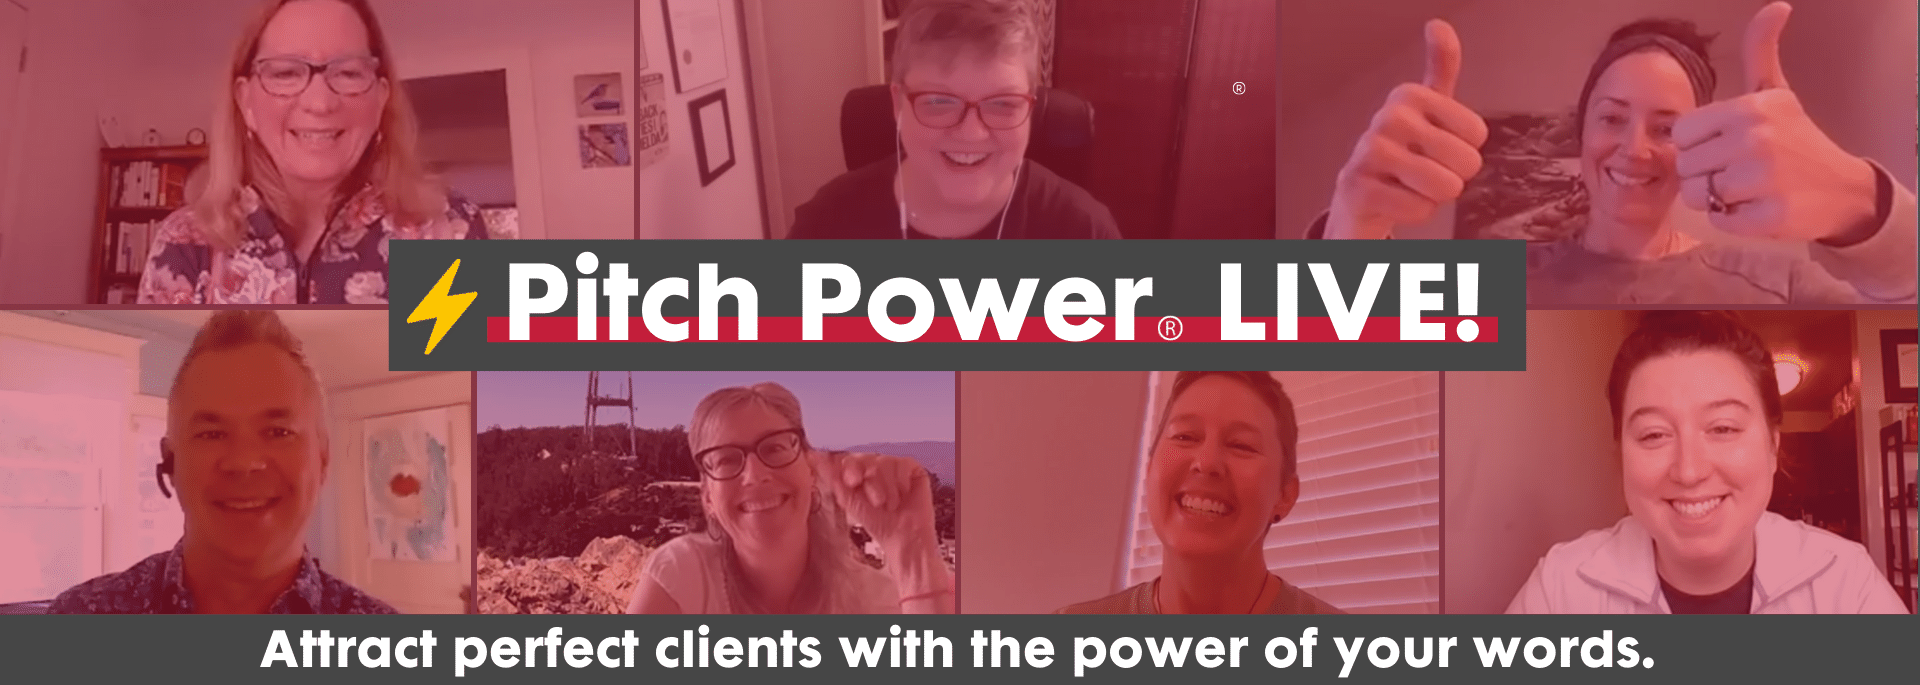 Pitch Power LIVE! Talk About What You Do & Attract Perfect Clients